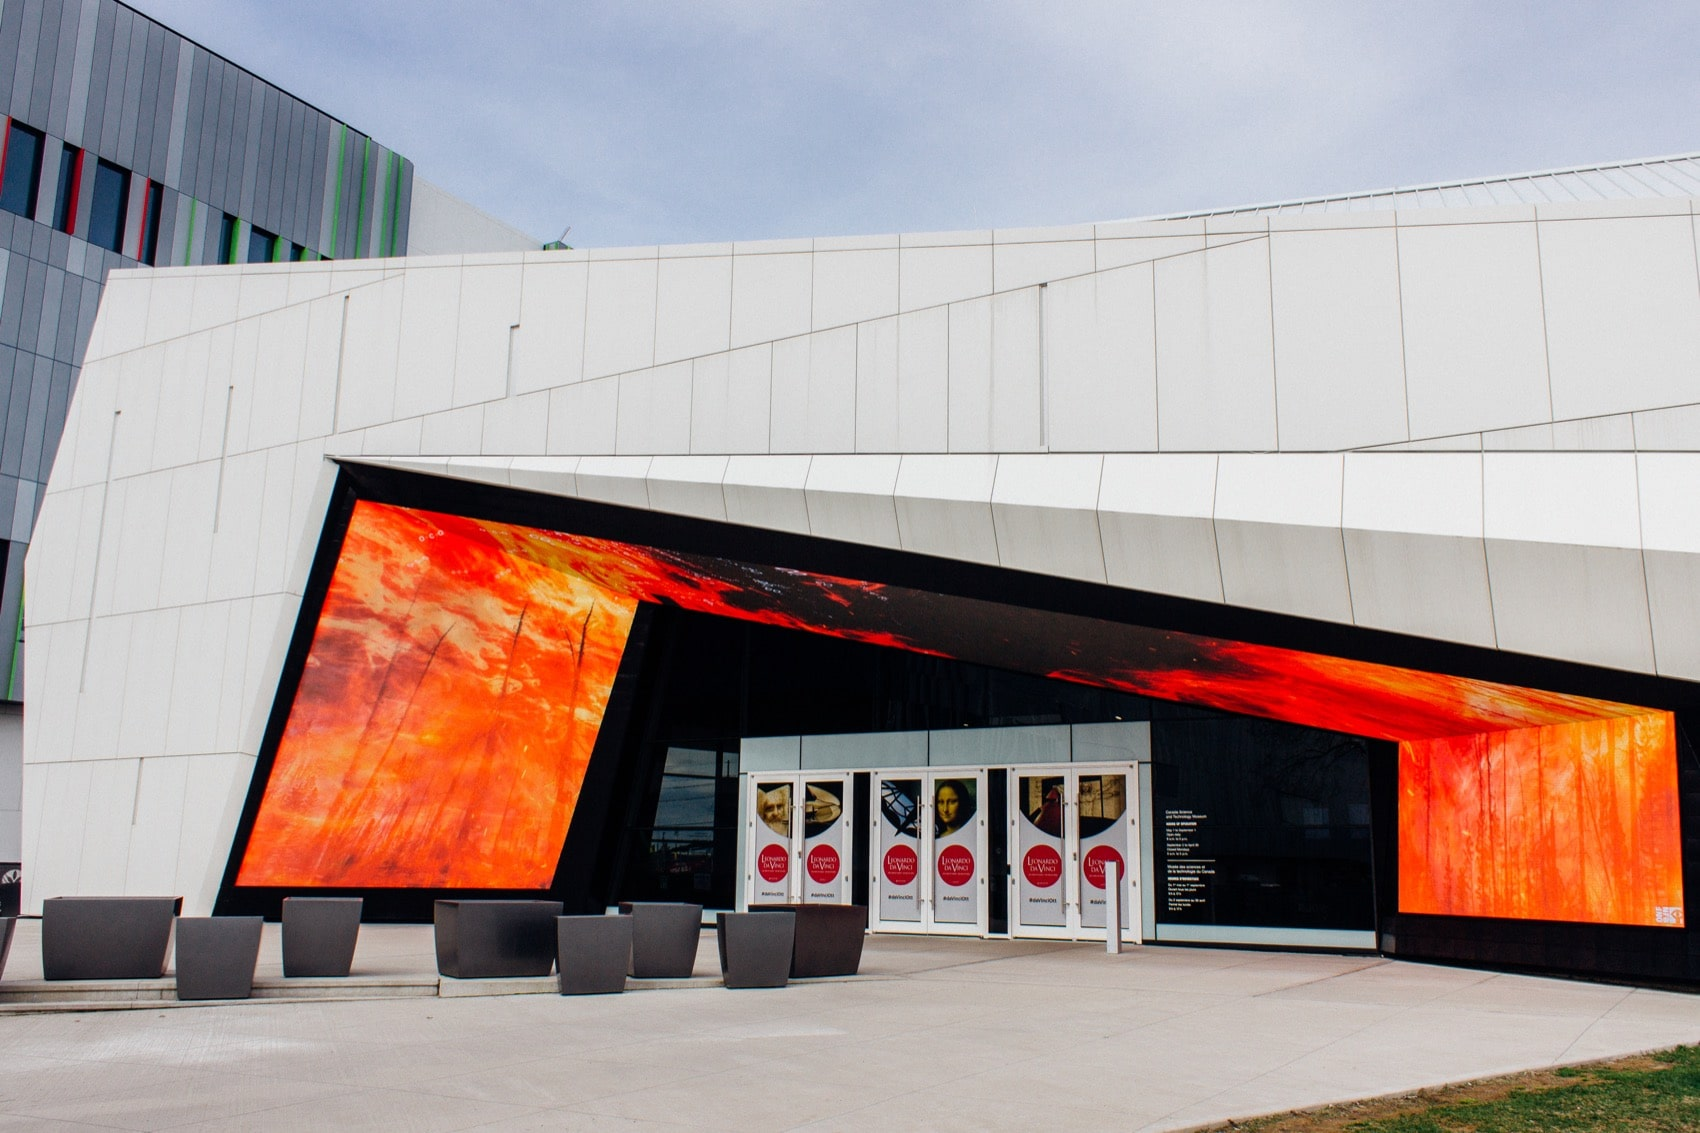 the exterior of a science museum, which is white and futuristic looking with a large video display that frames the doorway